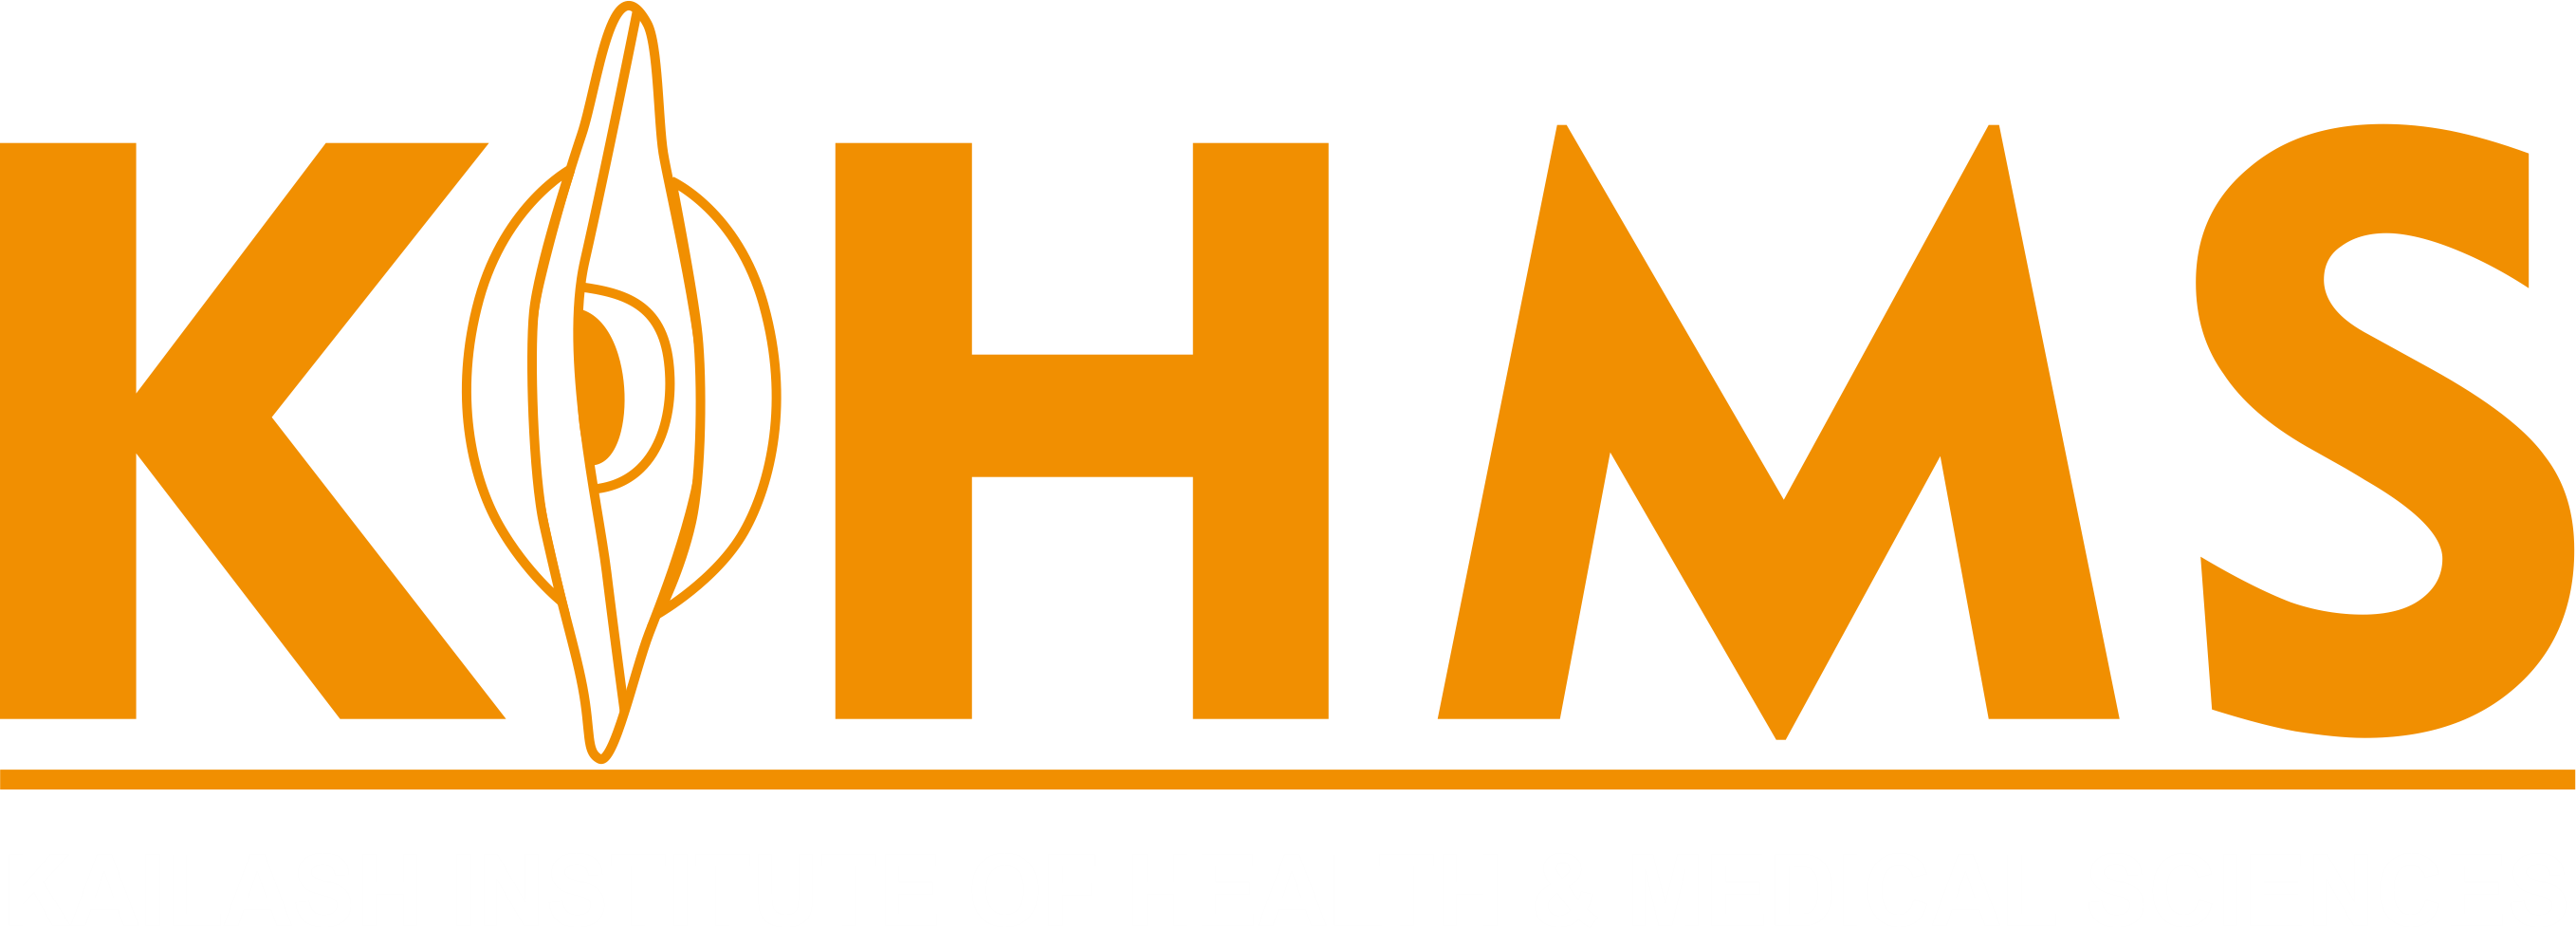 Kailash Institute of Health and Medical Sciences, College of Nursing, Panchkula